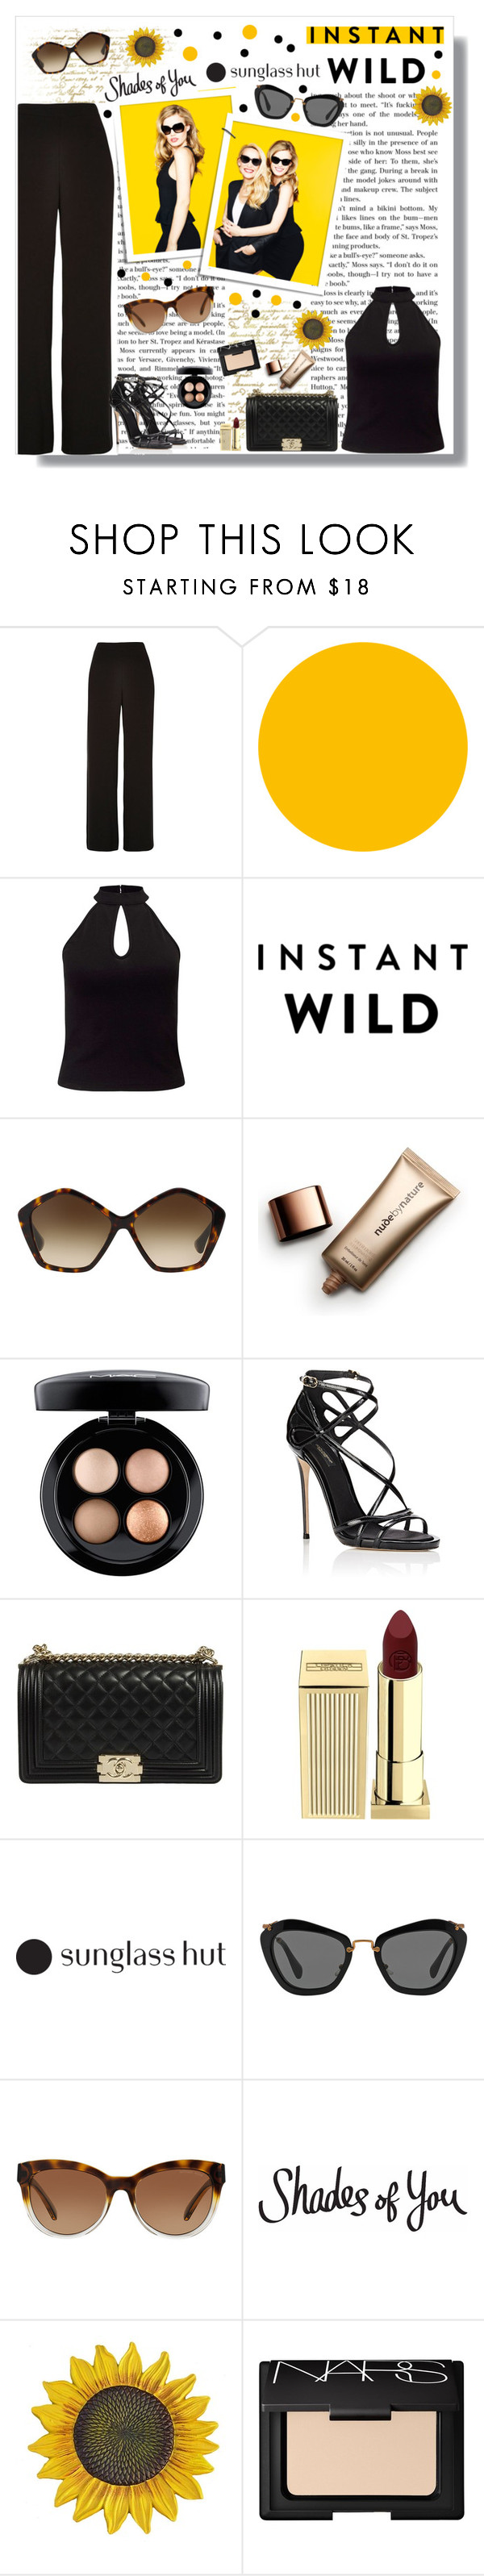 """""""Shades of You: Sunglass Hut Contest Entry"""" by polybaby ❤ liked on Polyvore featuring River Island, Jagger, Miss Selfridge, Miu Miu, Nude by Nature, MAC Cosmetics, Dolce&Gabbana, Lipstick Queen, Michael Kors and NARS Cosmetics"""